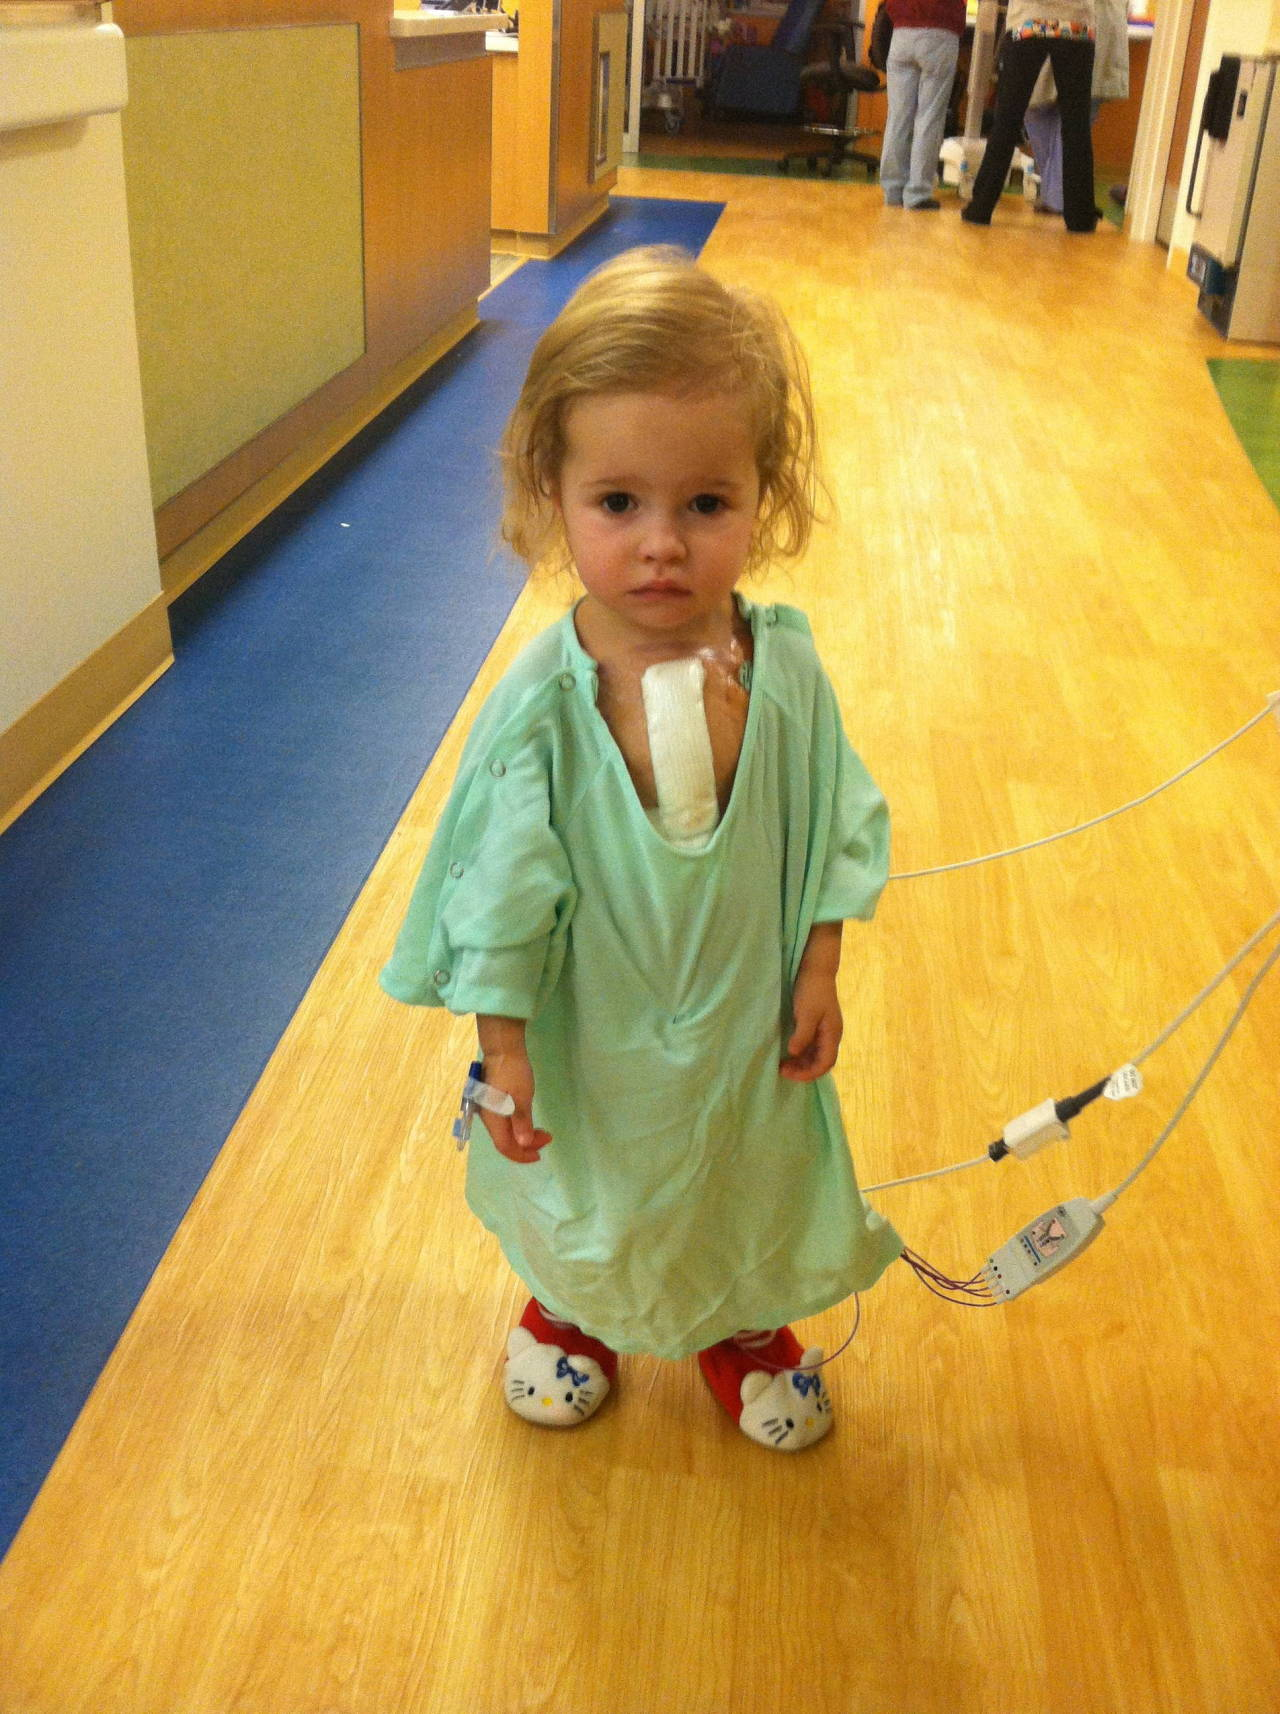 ilovehadleysomuch:  samsclub21:  flightmediclife:  This beautiful little girl had open heart surgery less than 24 hours before this photo was taken. When asked why she was up so quickly, she replied her Hello Kitty slippers make everything better.  Reblog to show how strong she is! Note: This photo was published with permission from her mother.   AW I just want to hold her  She's the cutest girl, ever.